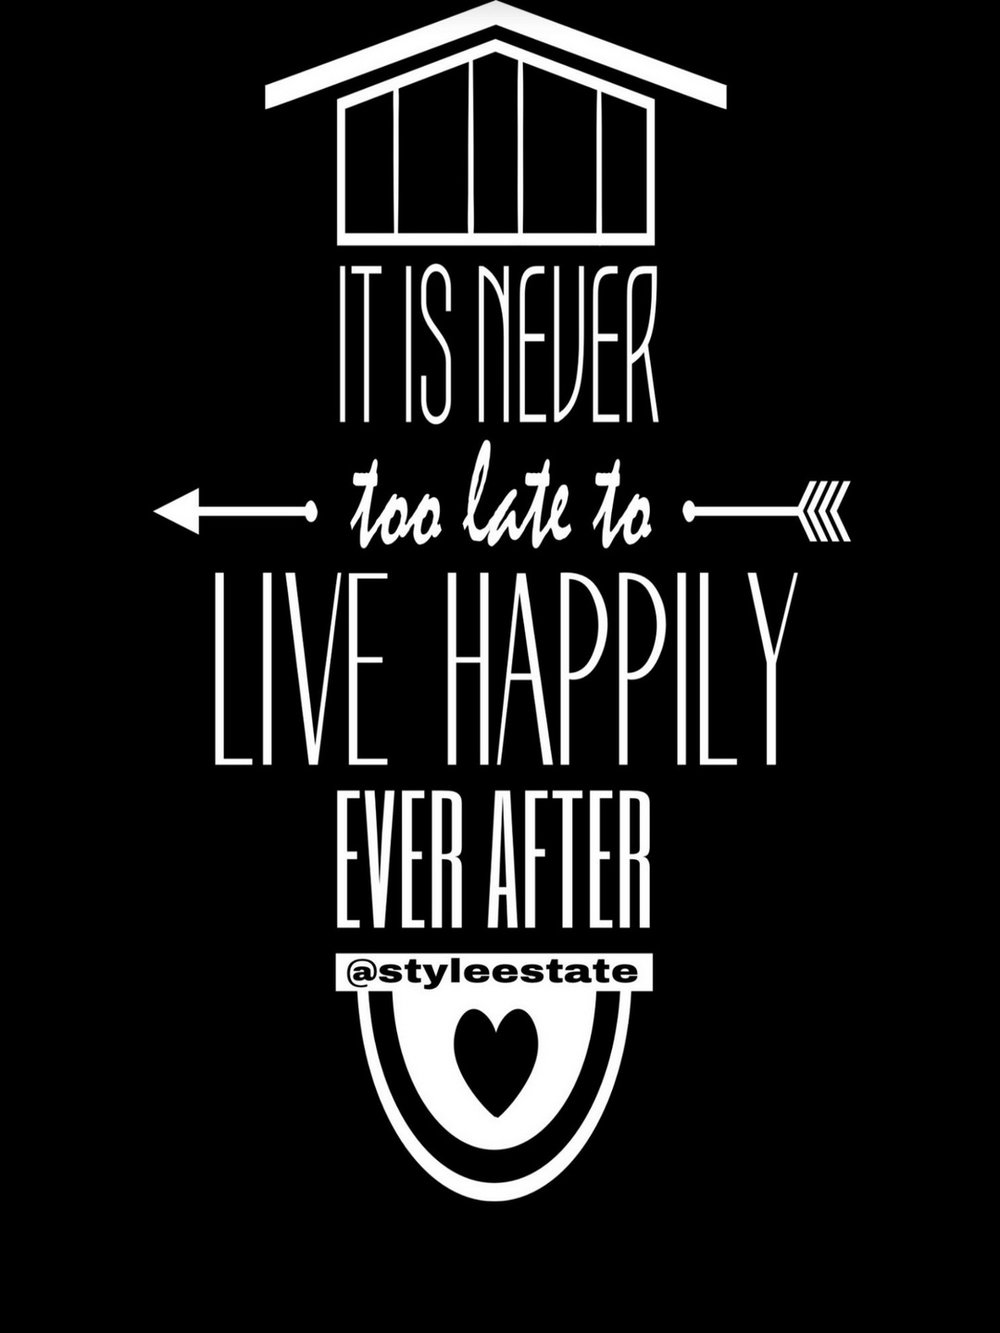 Naughty Quotes @styleestate #quotd